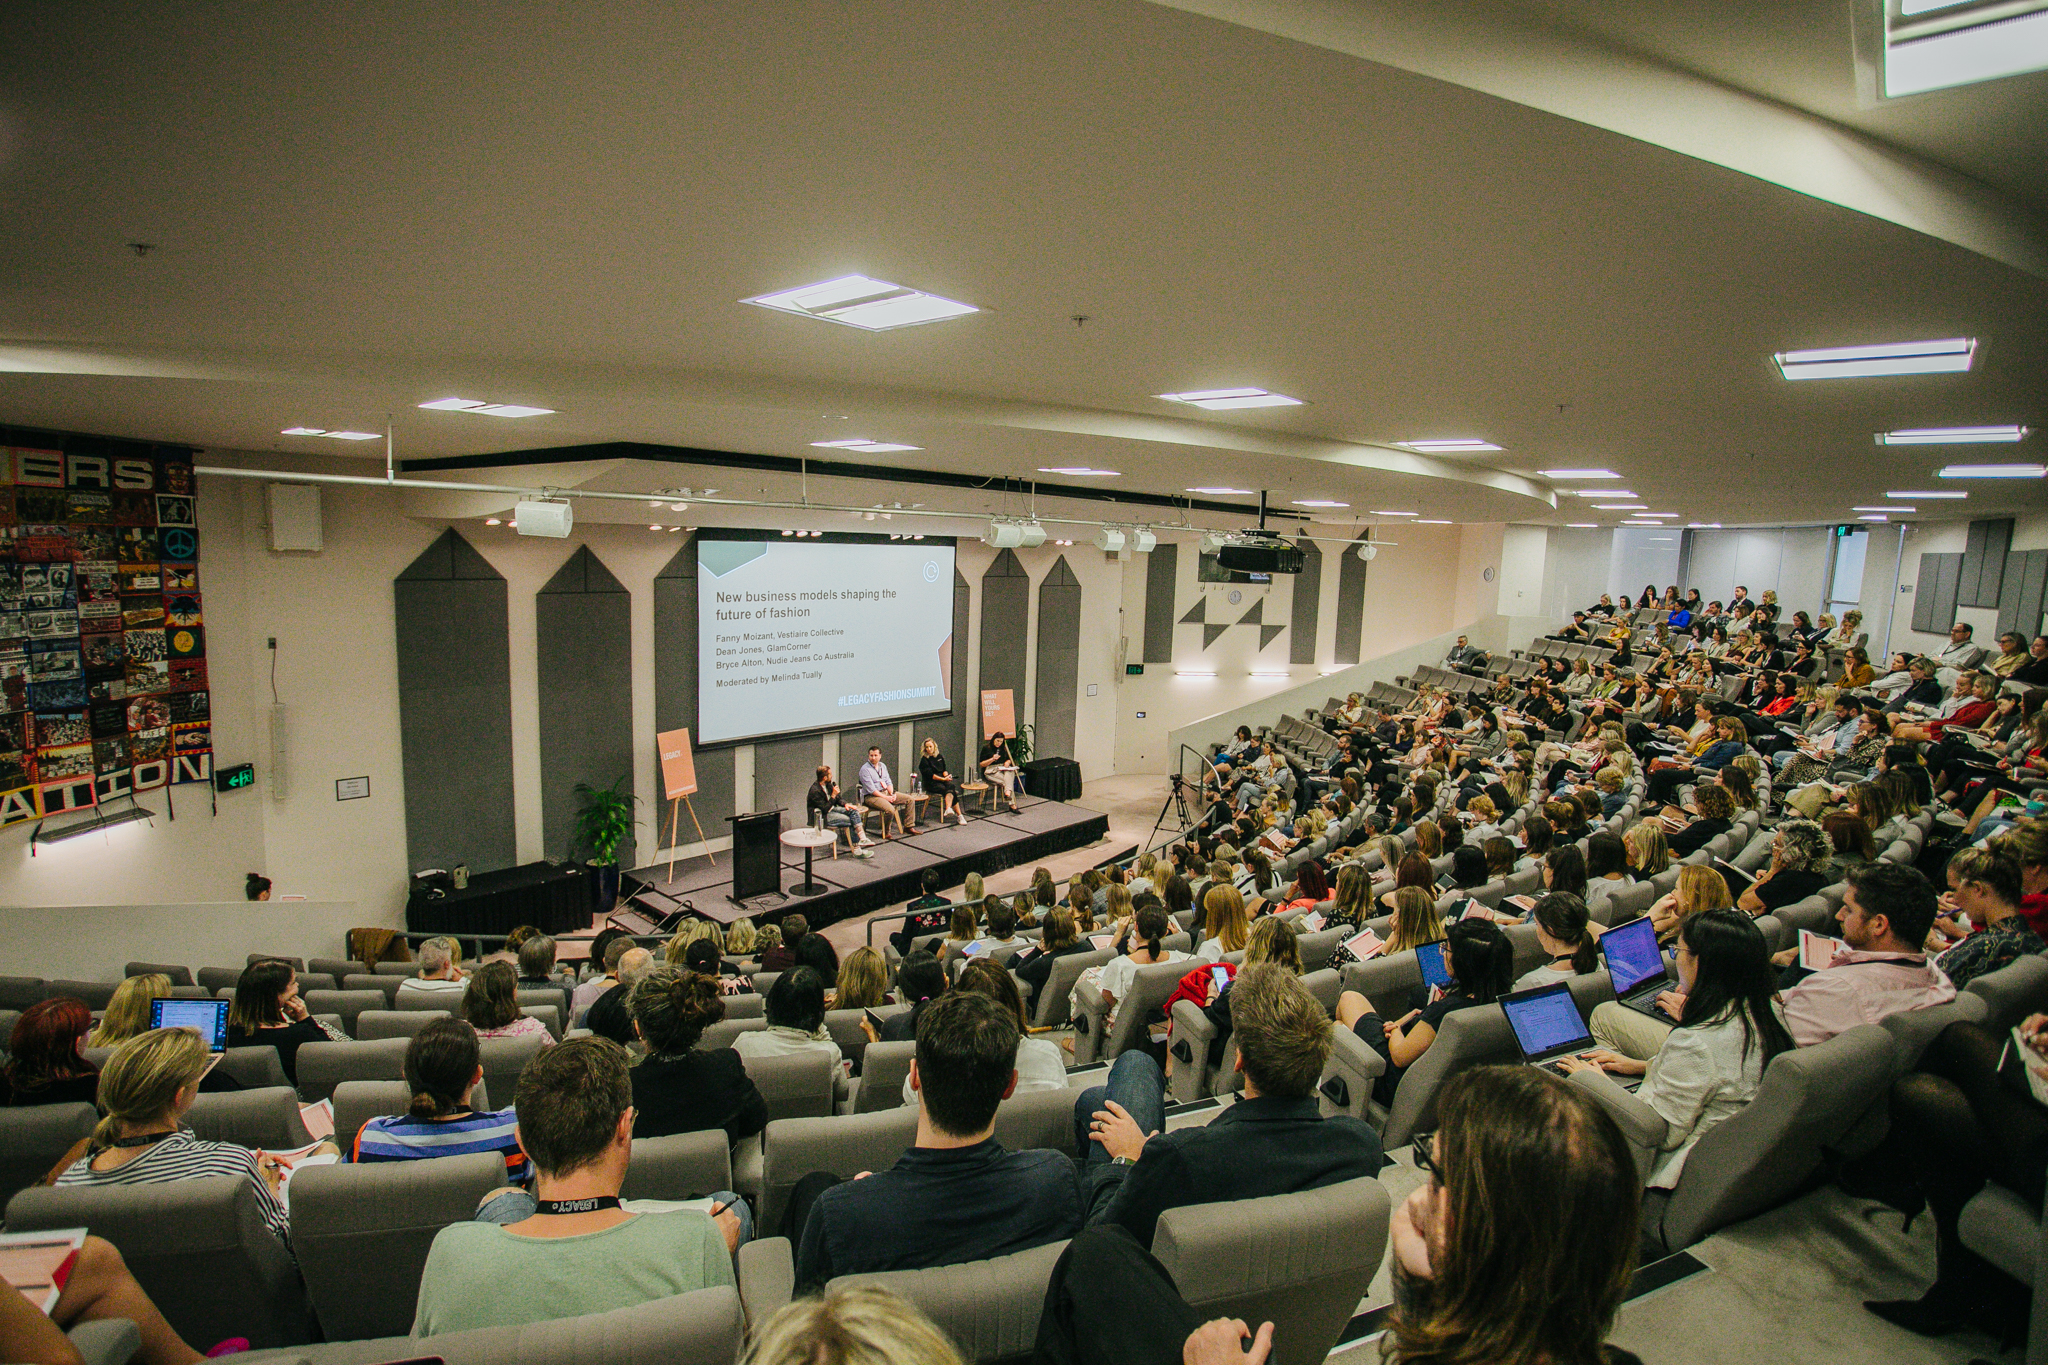 New business models shaping the future of fashion panel 5.jpg